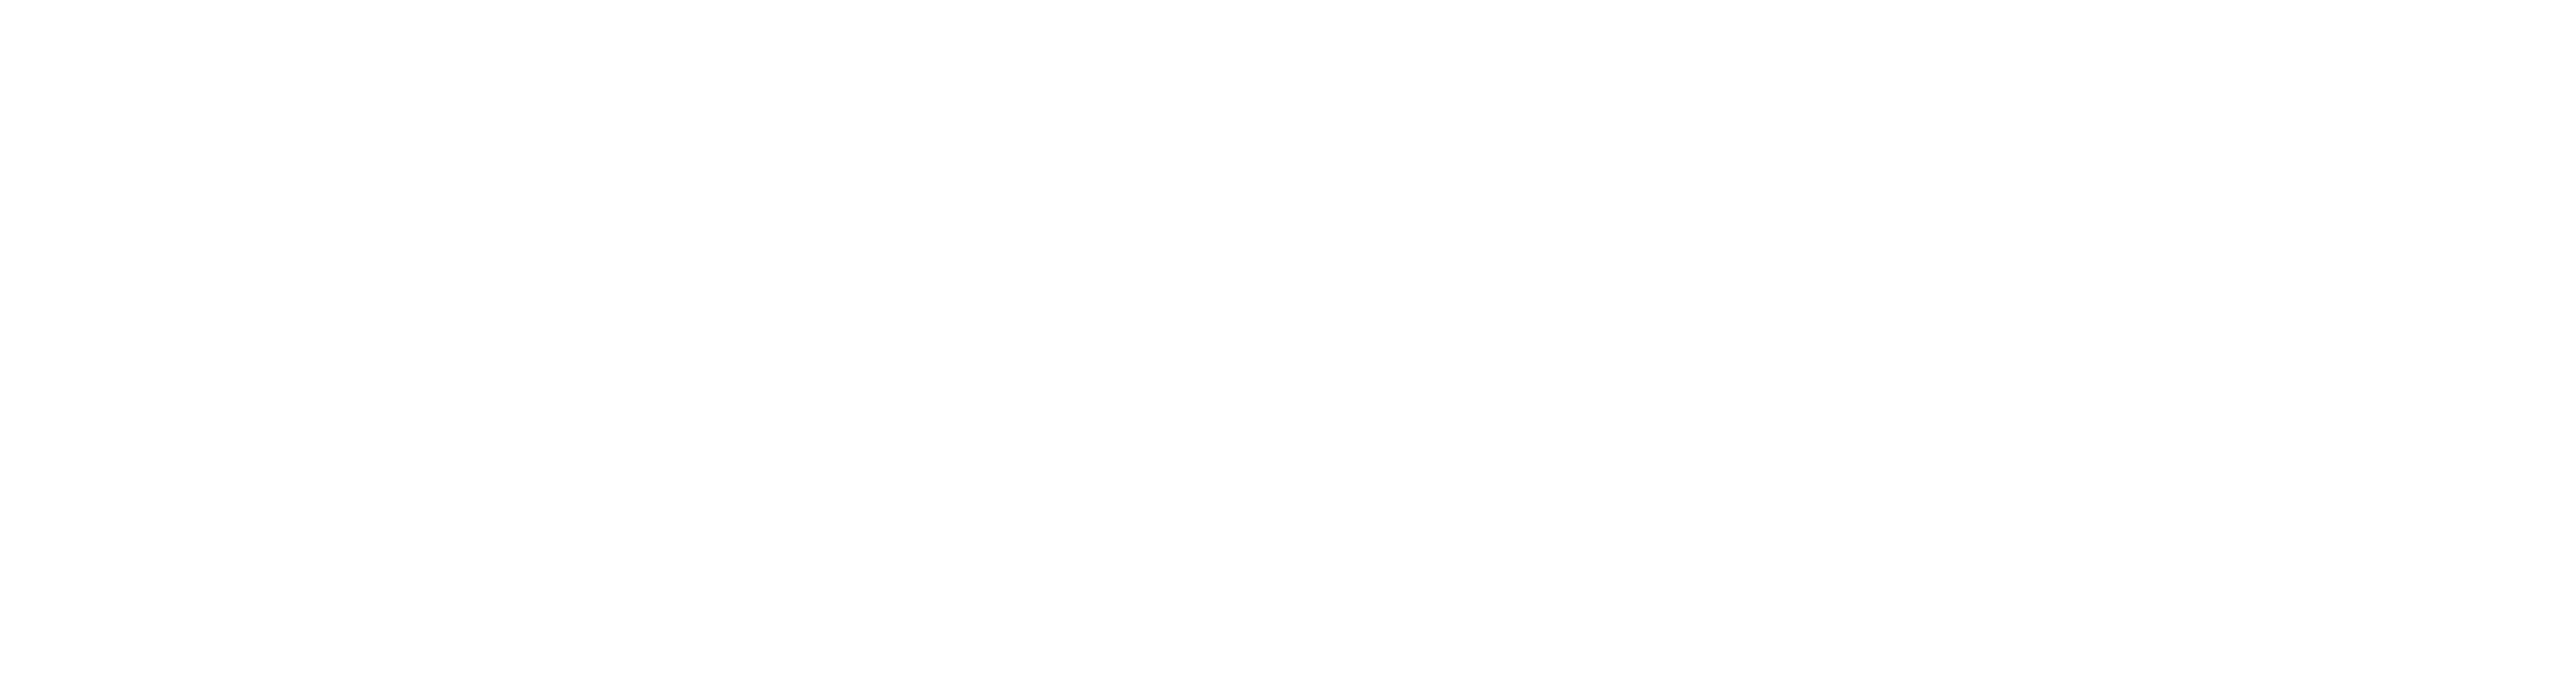 Blue Sky Analytics logo